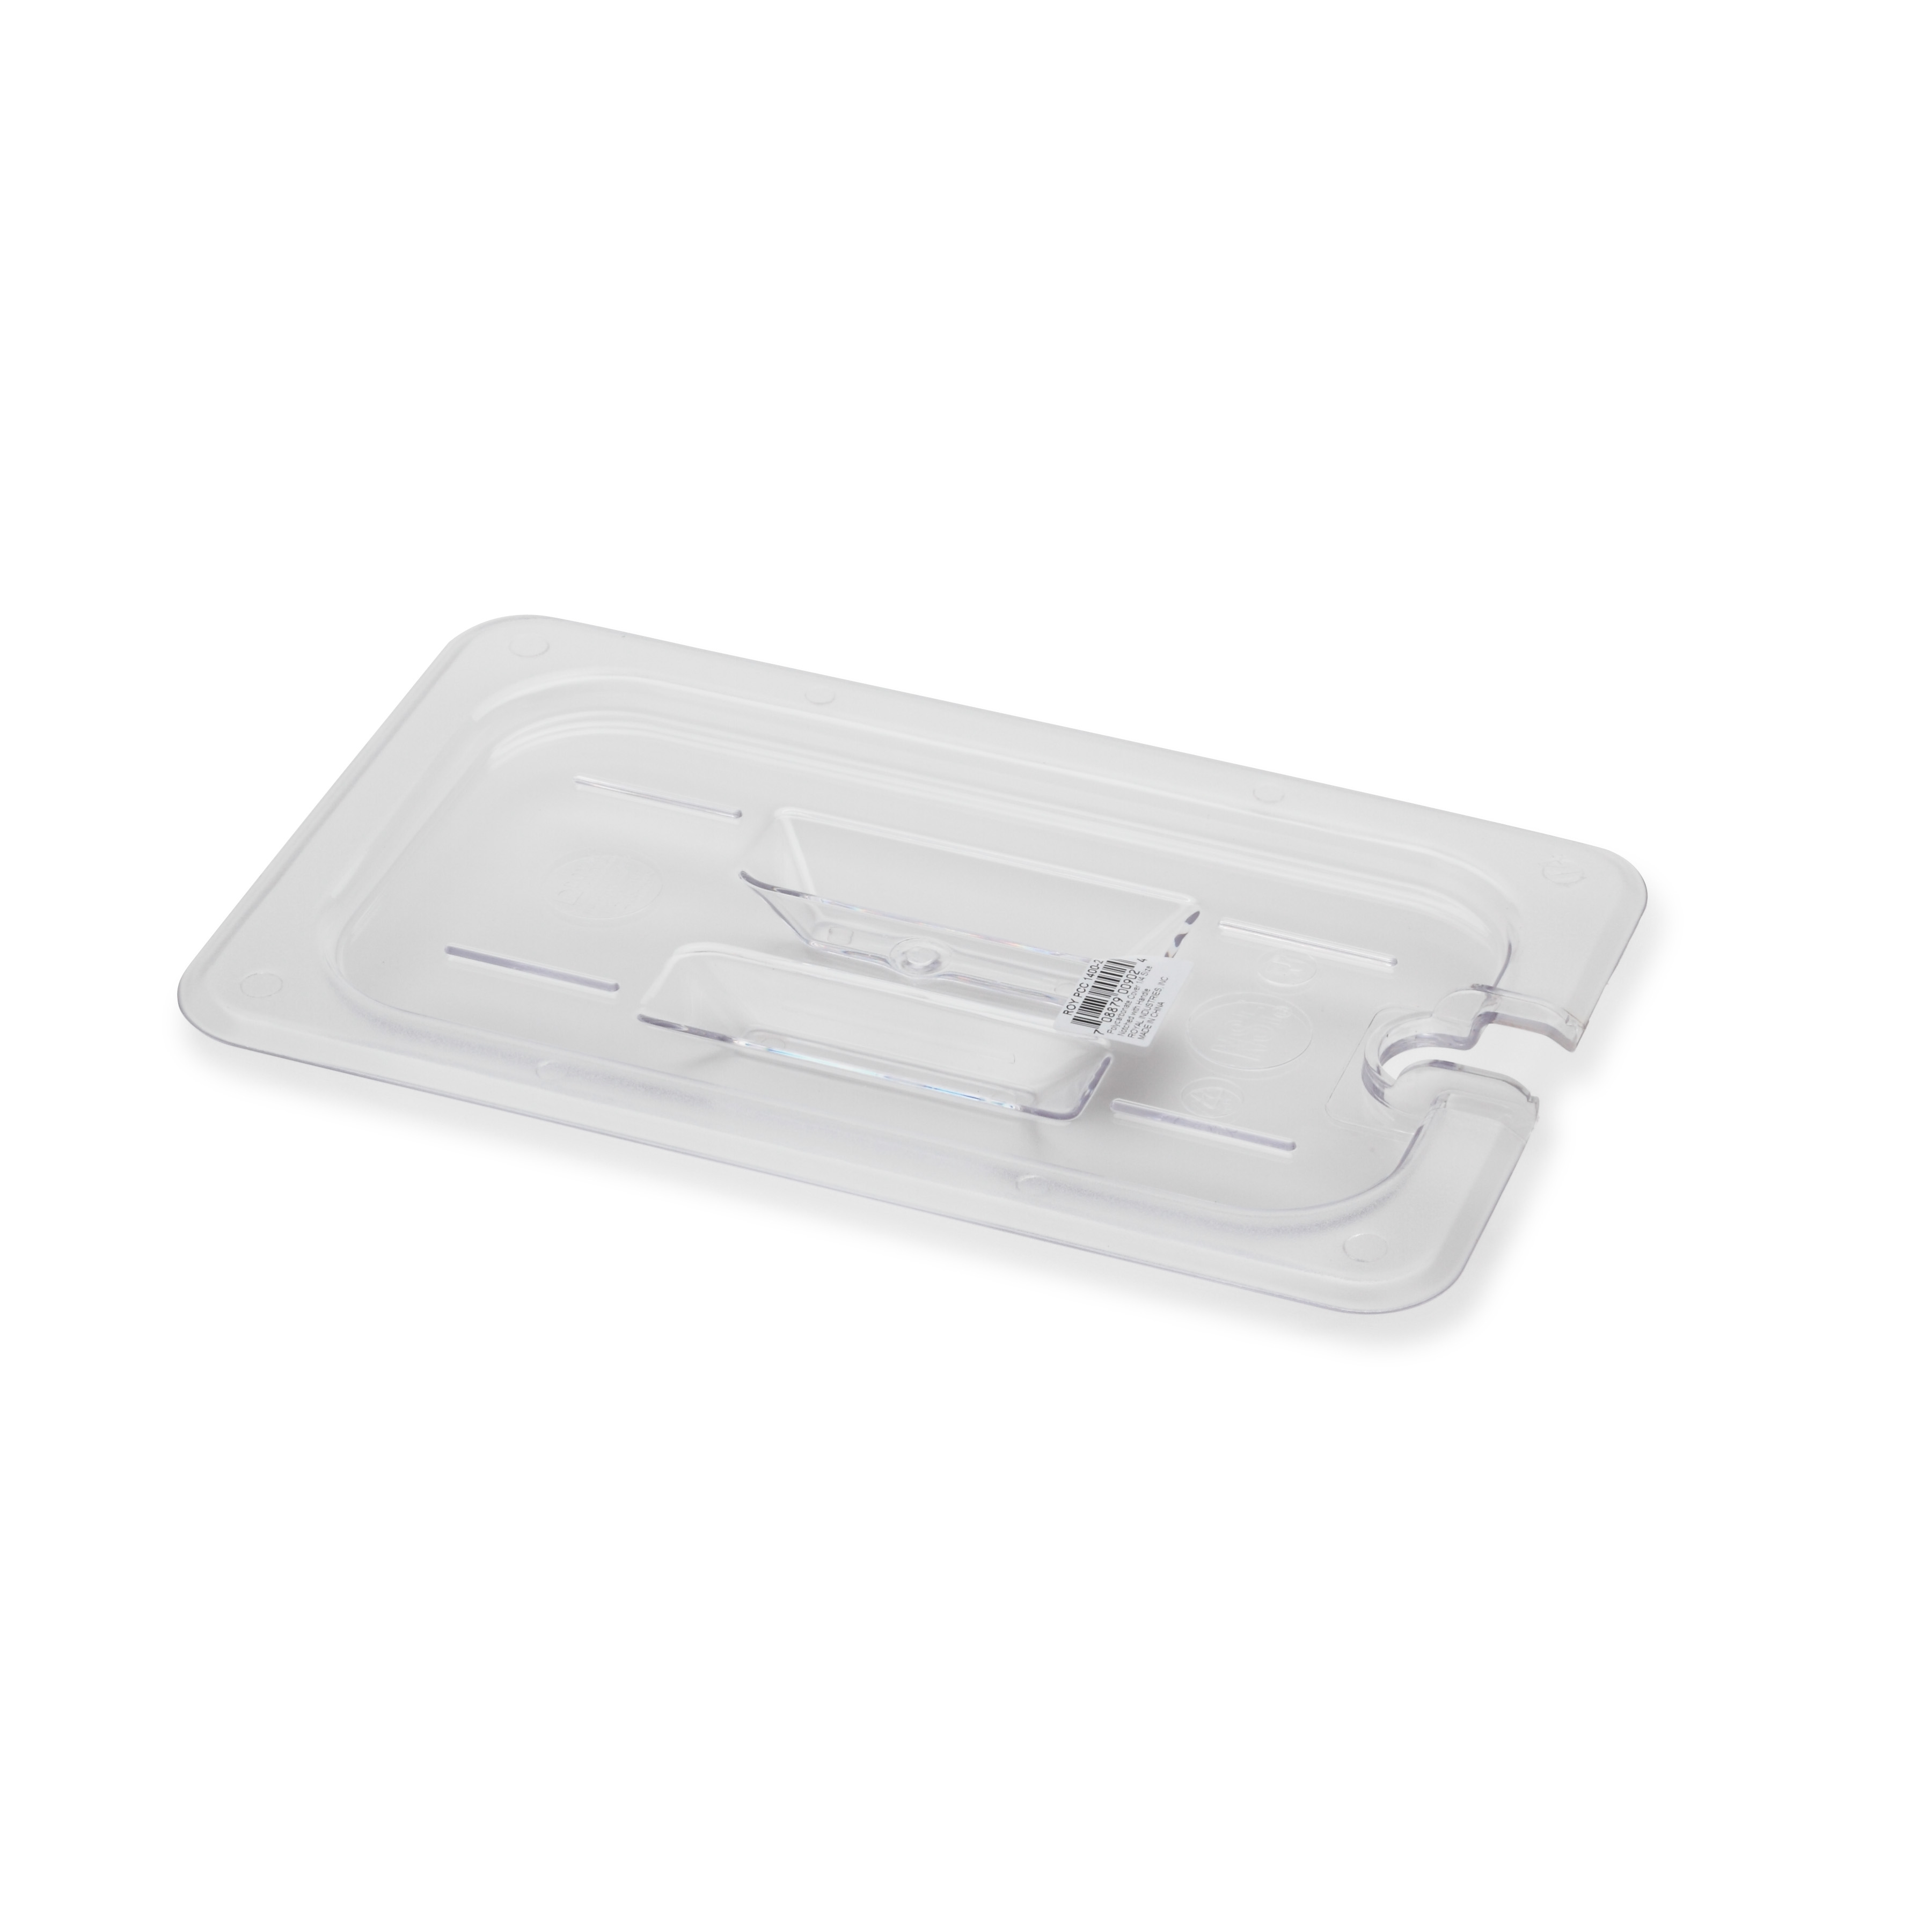 Royal Industries ROY PCC 1400-2 food pan cover, plastic